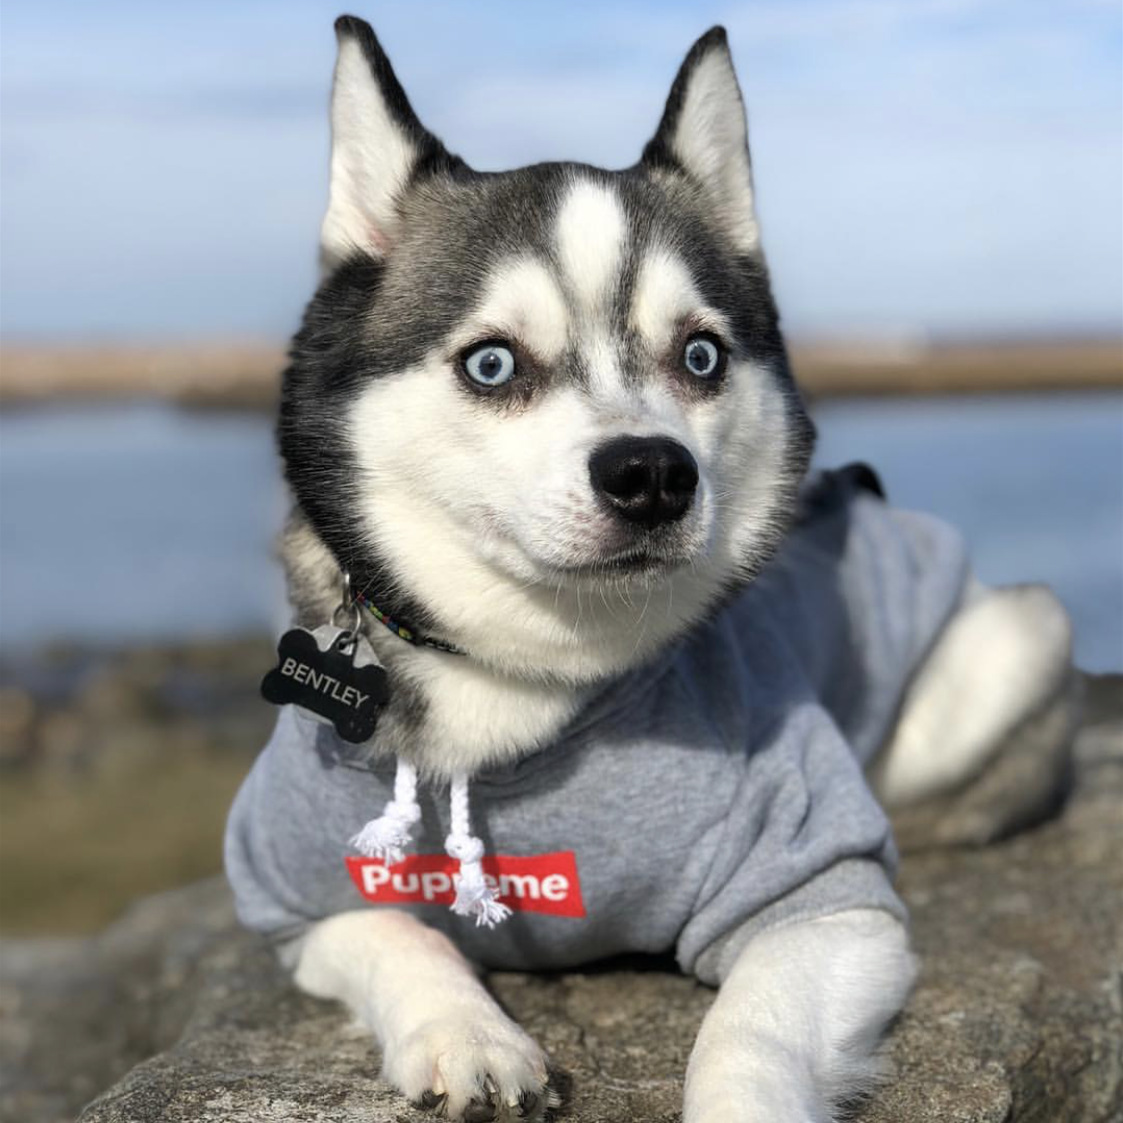 """Comfy Gray Pet Sweater with """"Pupreme"""" Print for Big Dogs Hansome Attire"""